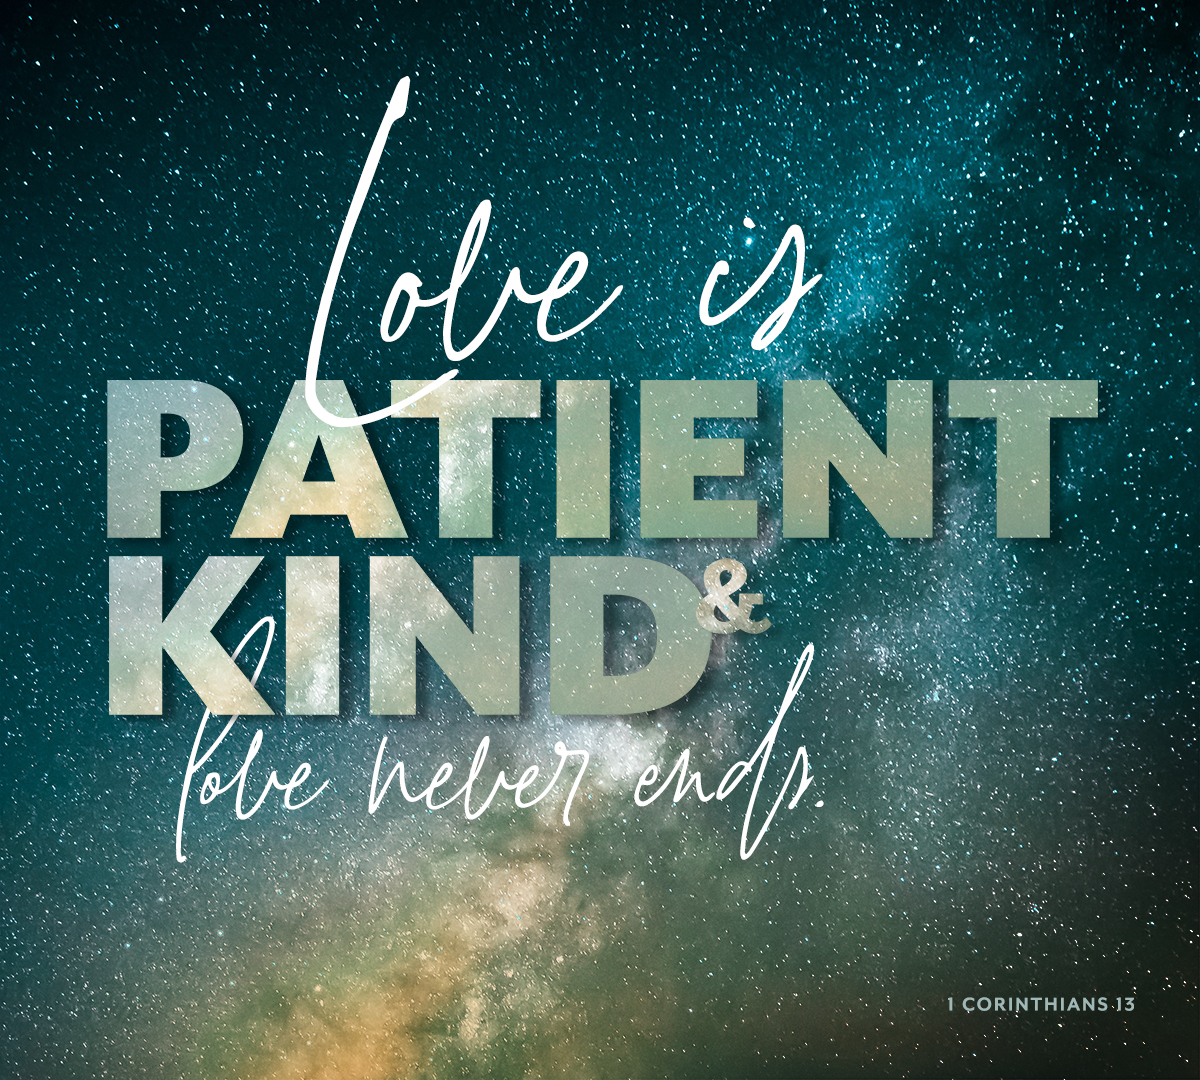 Love is patient,love is kind. It does not envy, it does not boast, it is not proud.It does not dishonor others, it is not self-seeking,it is not easily angered,it keeps no record of wrongs.Love does not delight in evil but rejoices with the truth.It always protects, always trusts, always hopes, always perseveres.Love never fails. 1 Corinthians 13:4-8